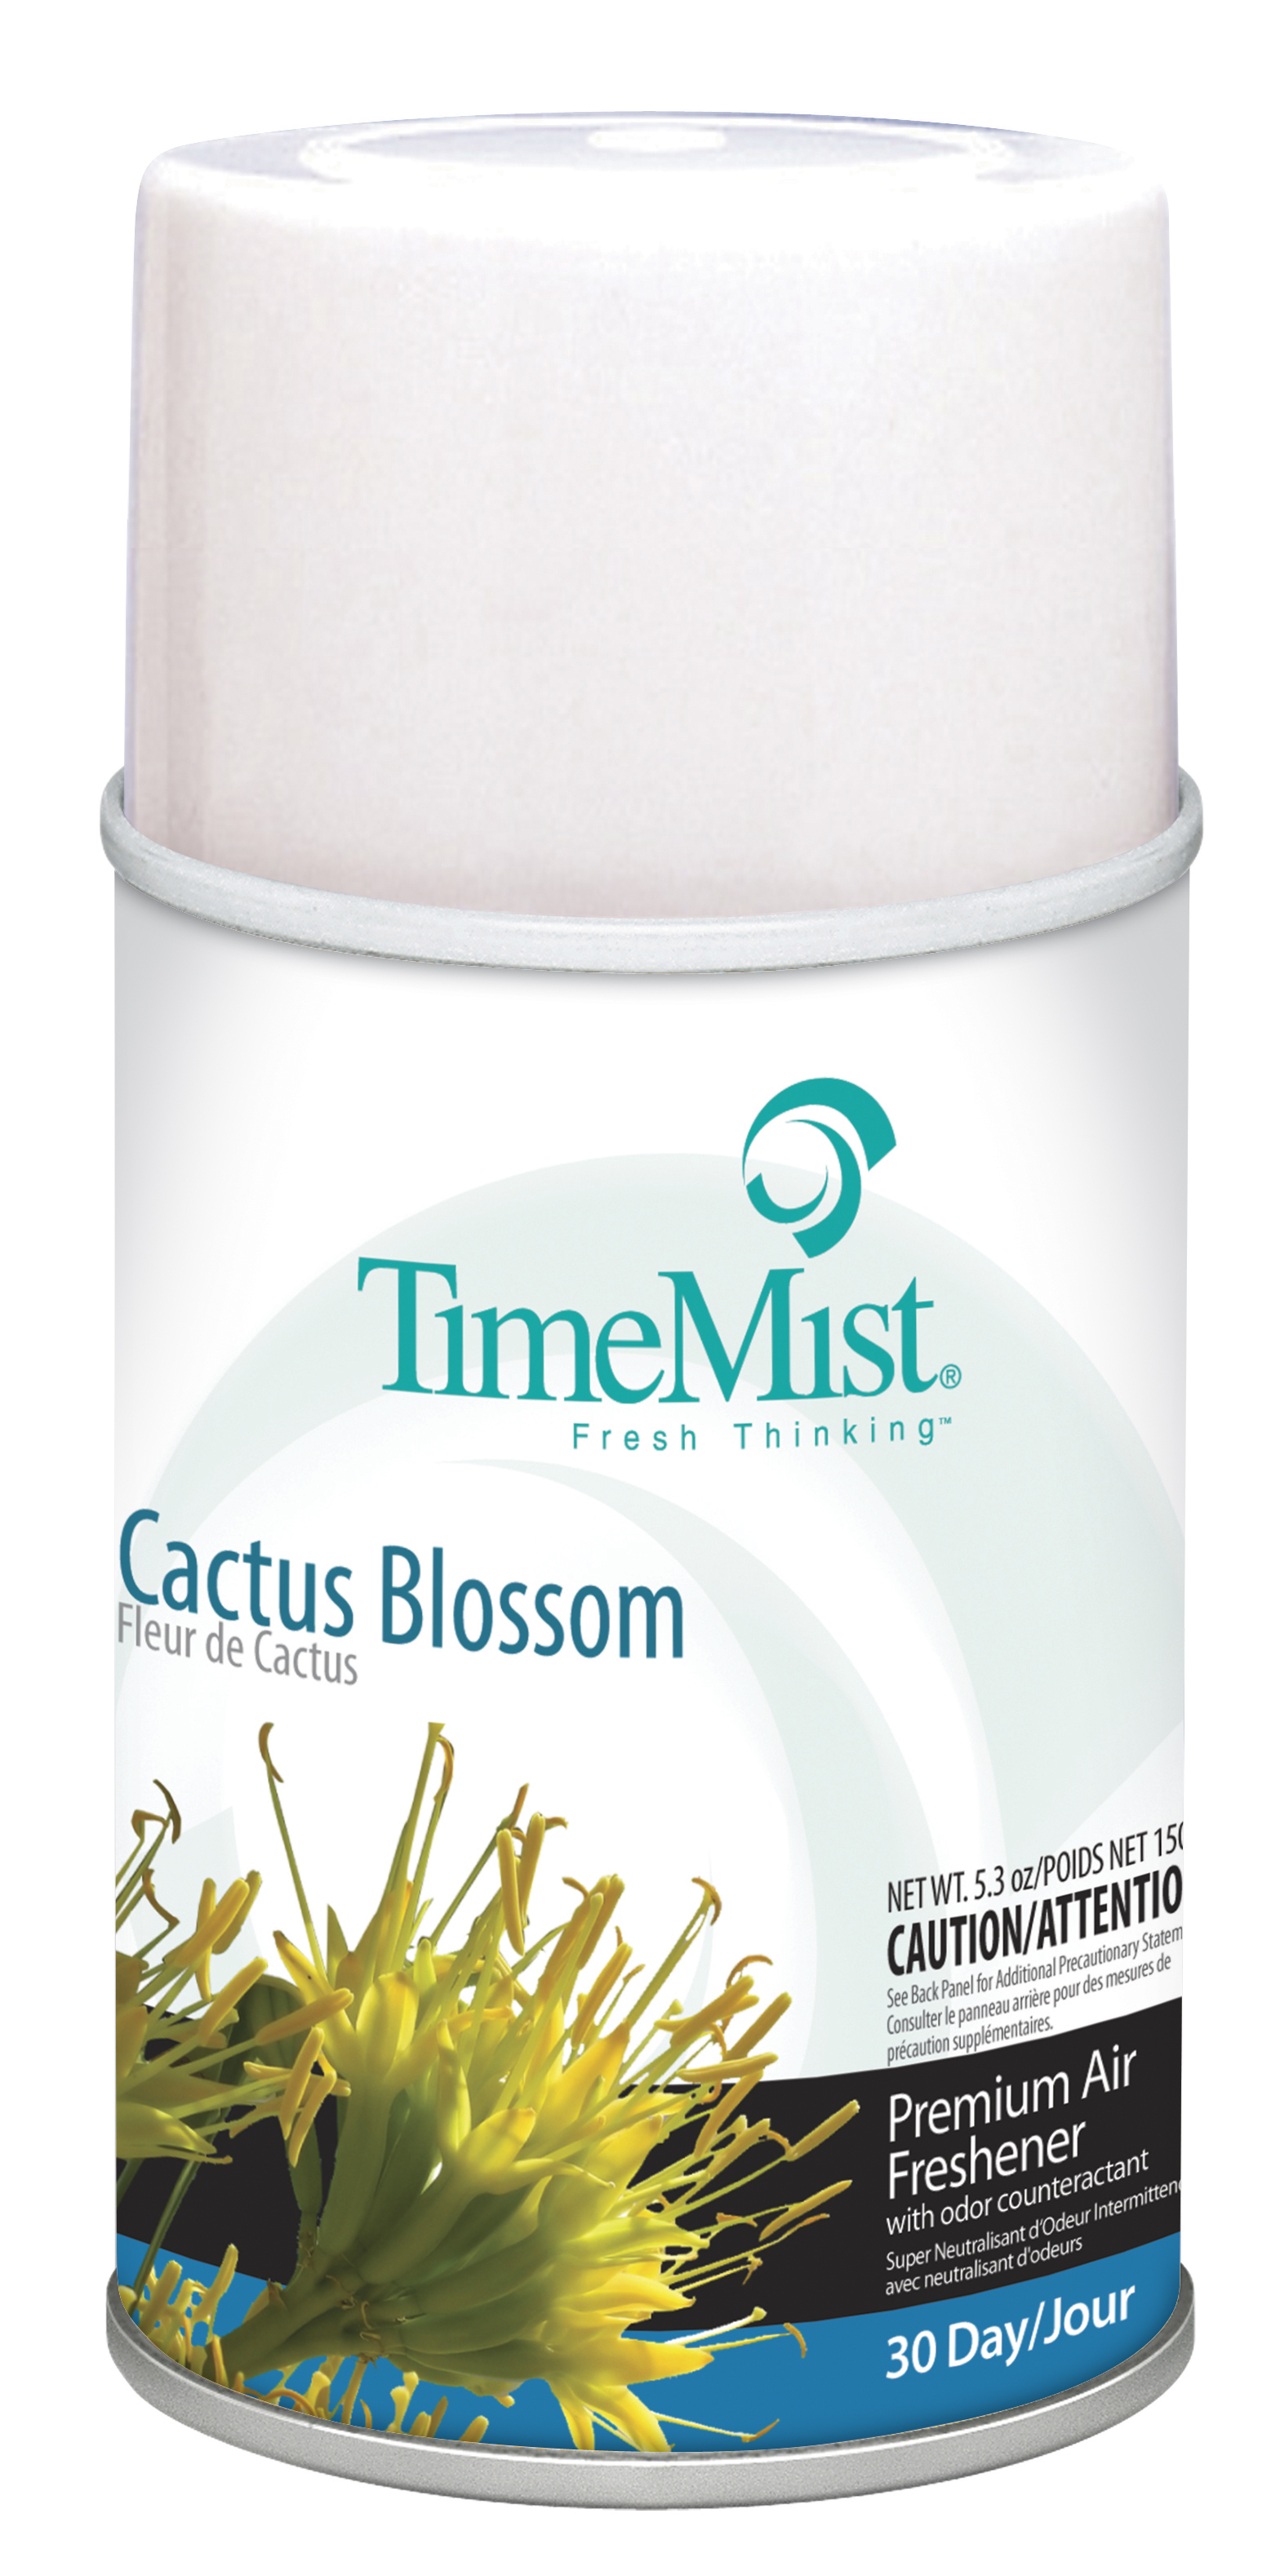 Cactus Blossom - 30 day Classic metered fragrance refill 5.3oz Aerosol Can